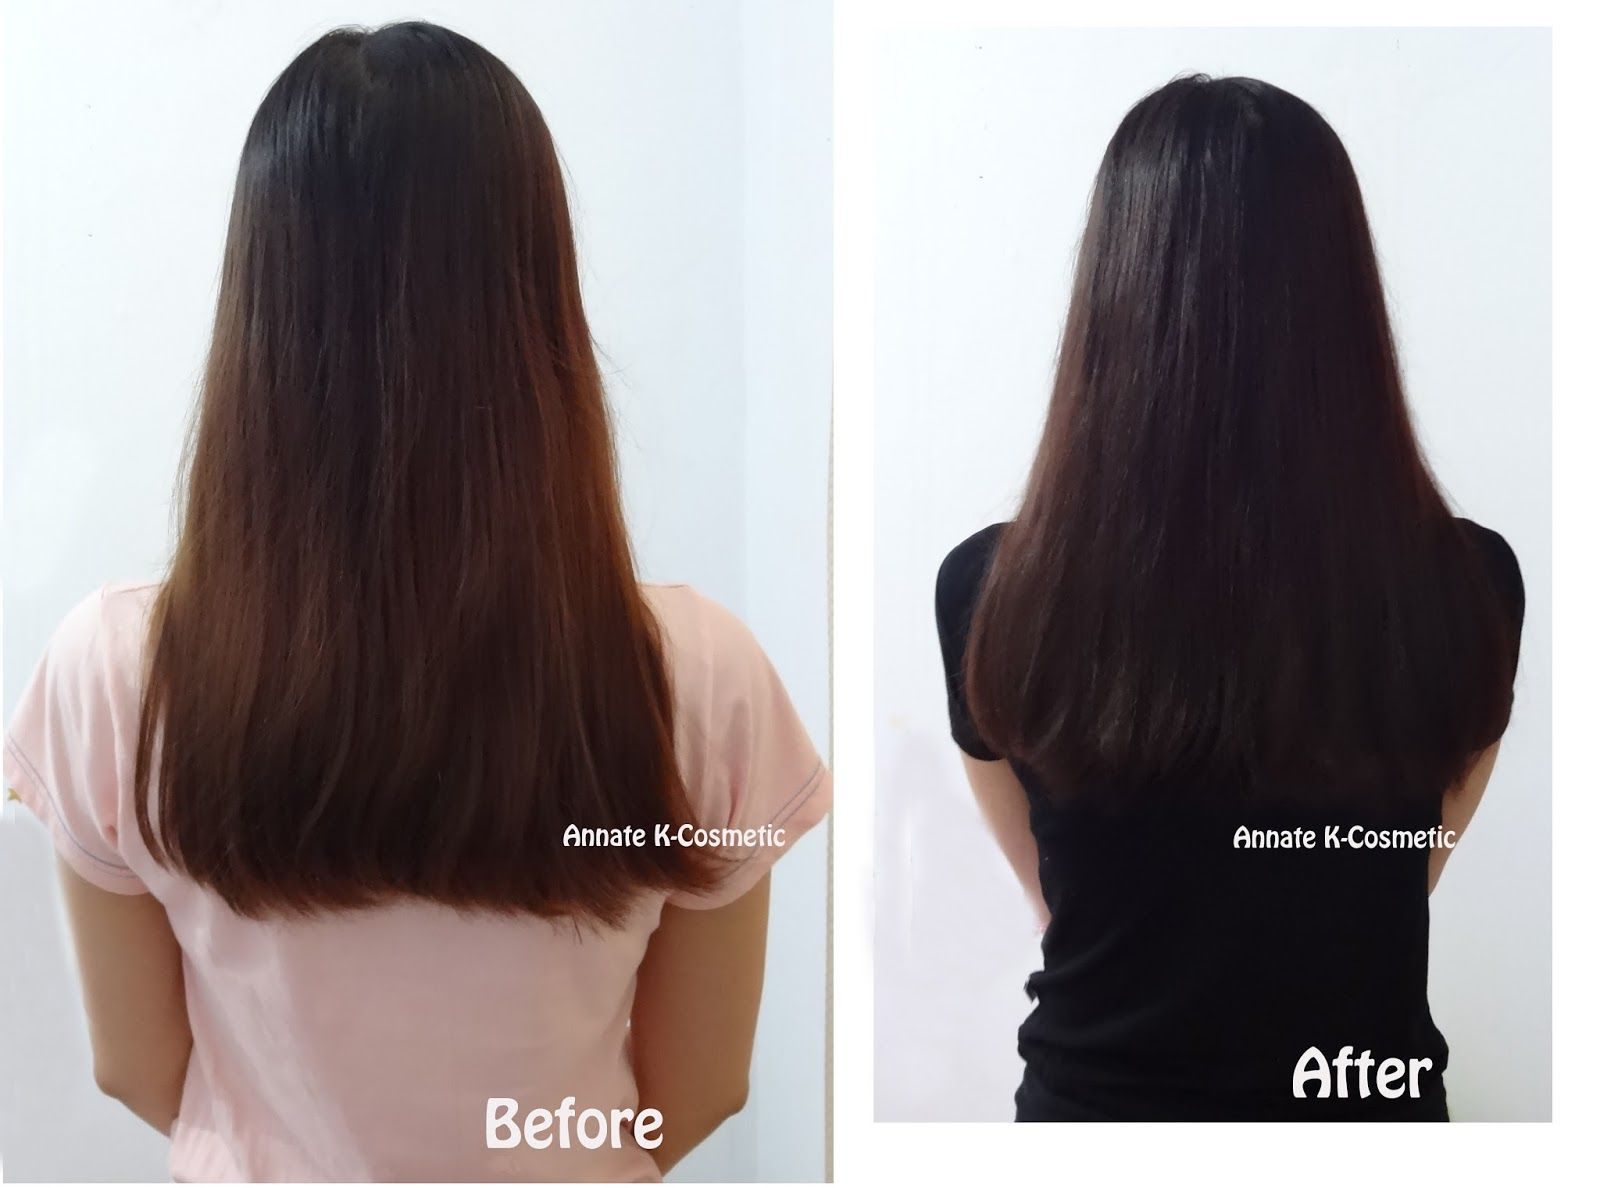 L'oreal Excellence Creme Hair Coloring 4.45 Mahogany